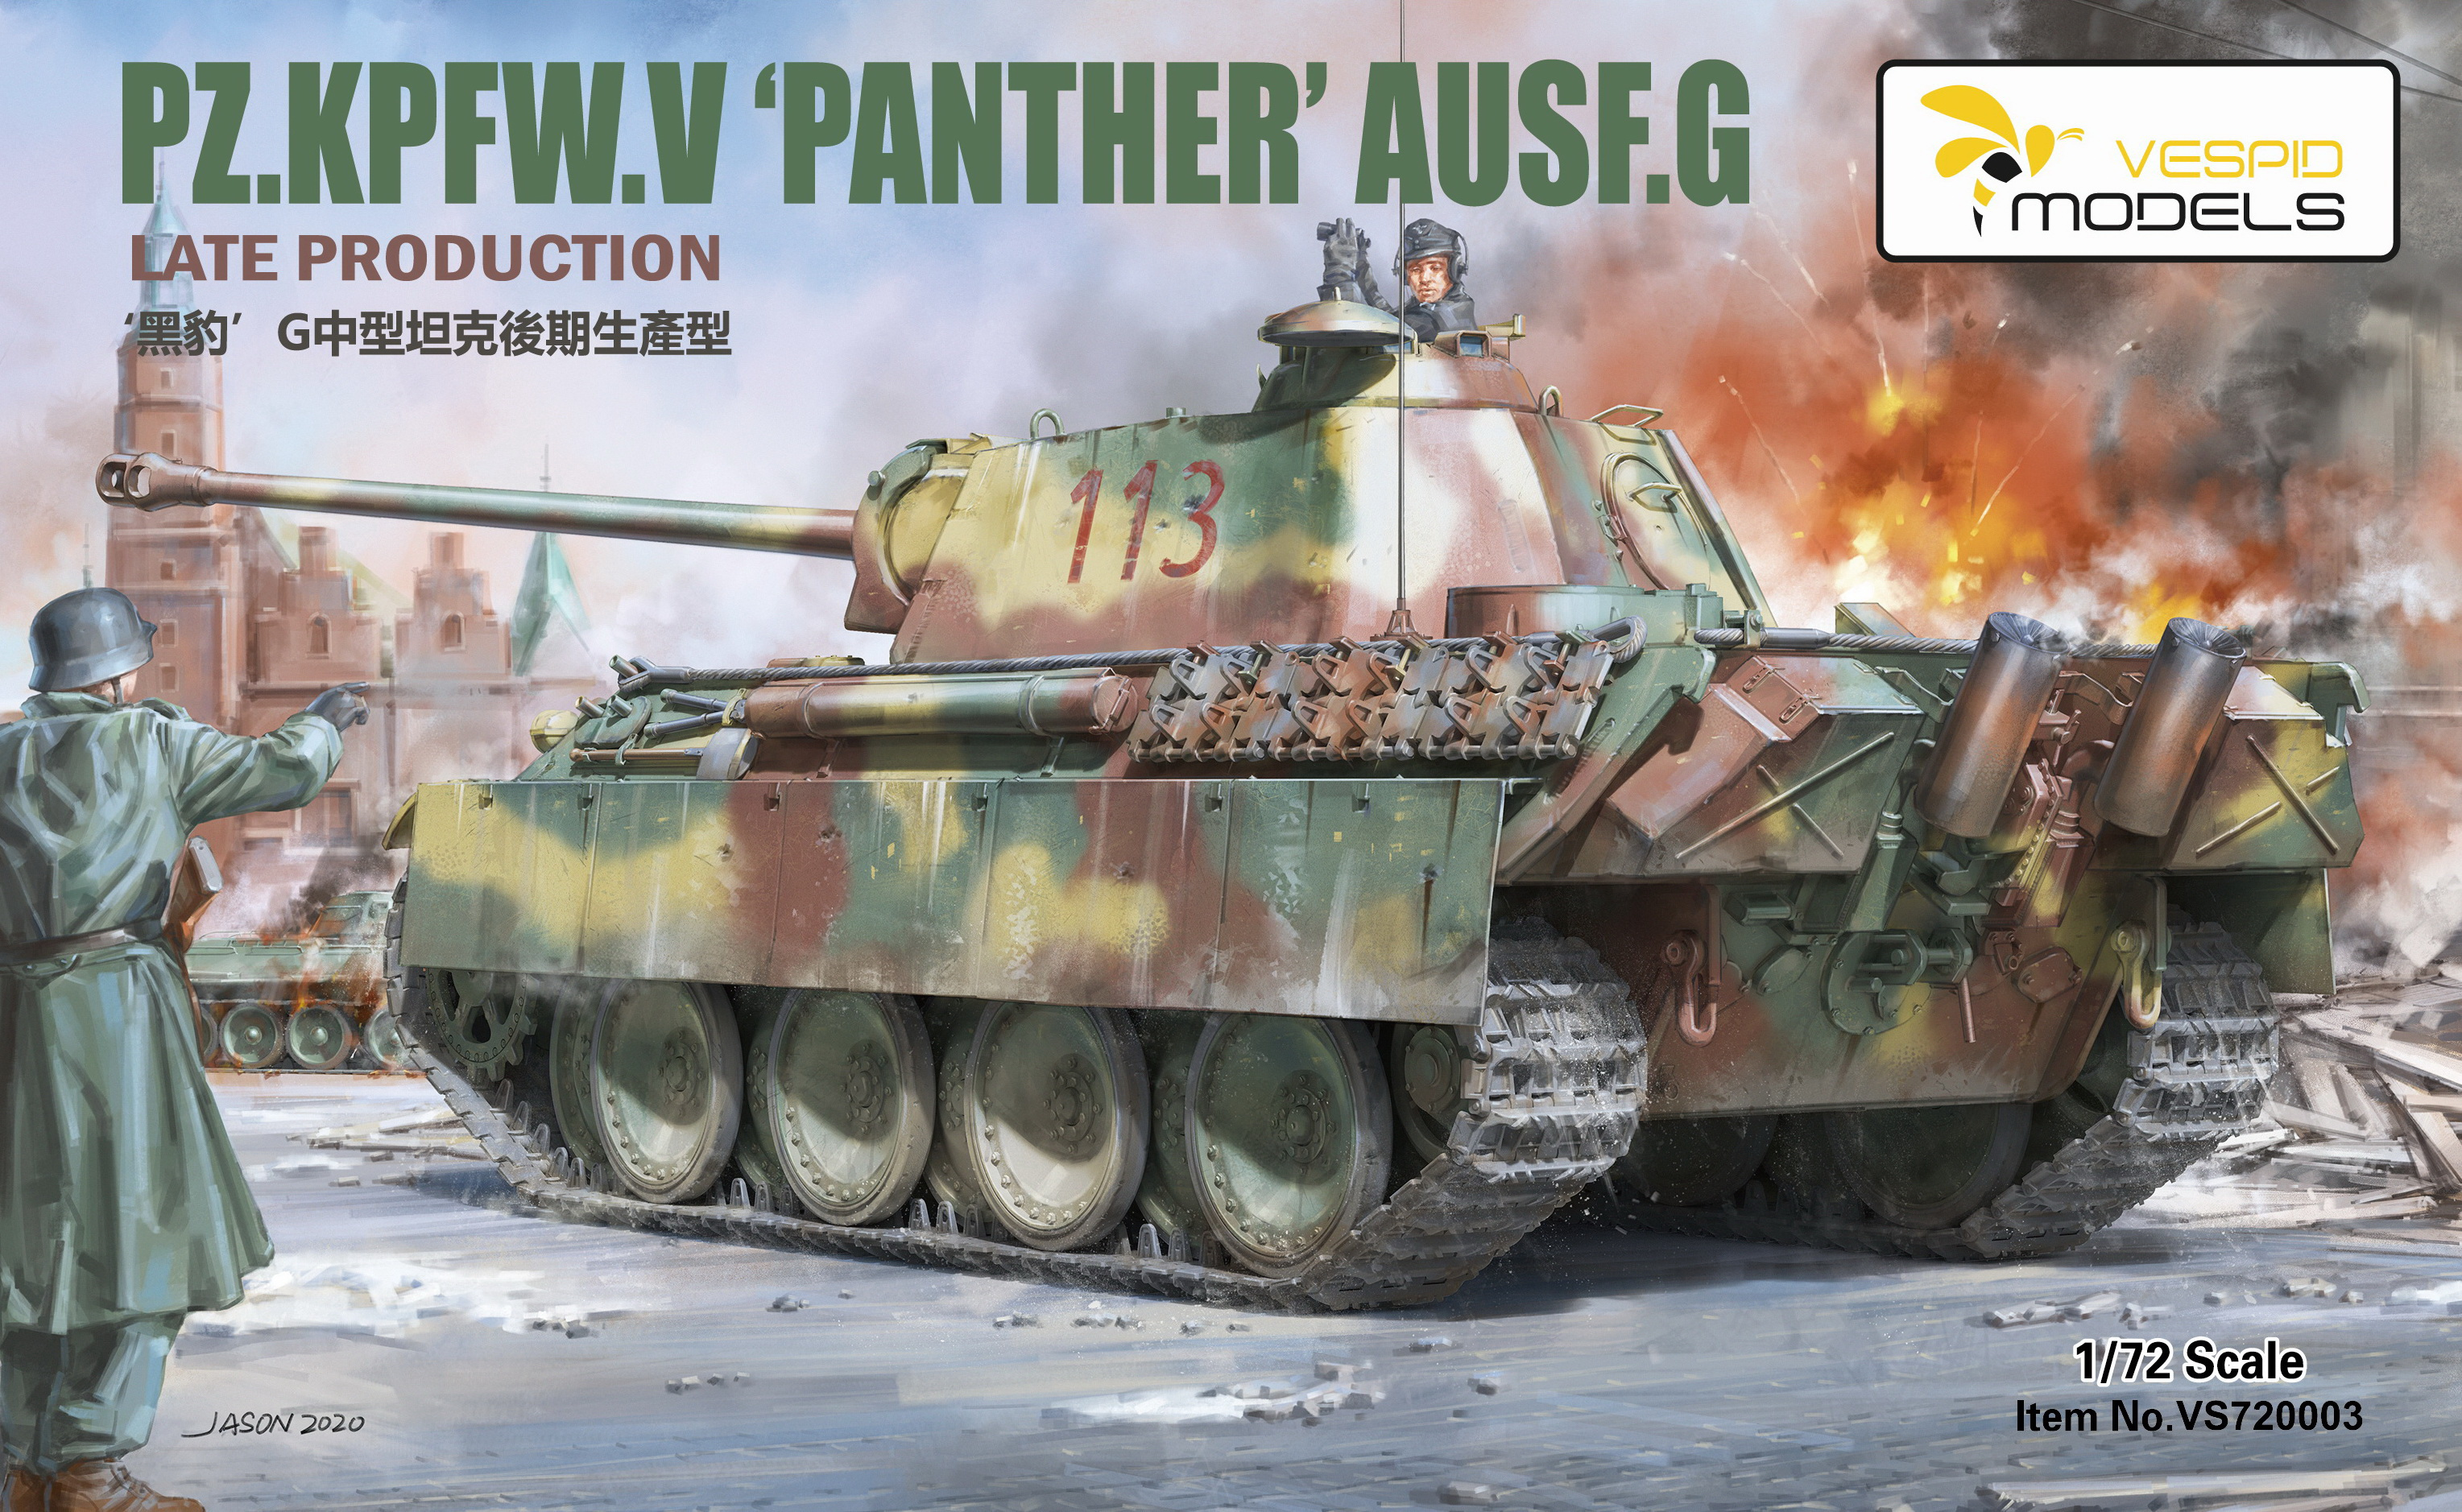 Vespid Models 1/72 Pz.Kpfw.V 'Panther' Ausf.G Late Production